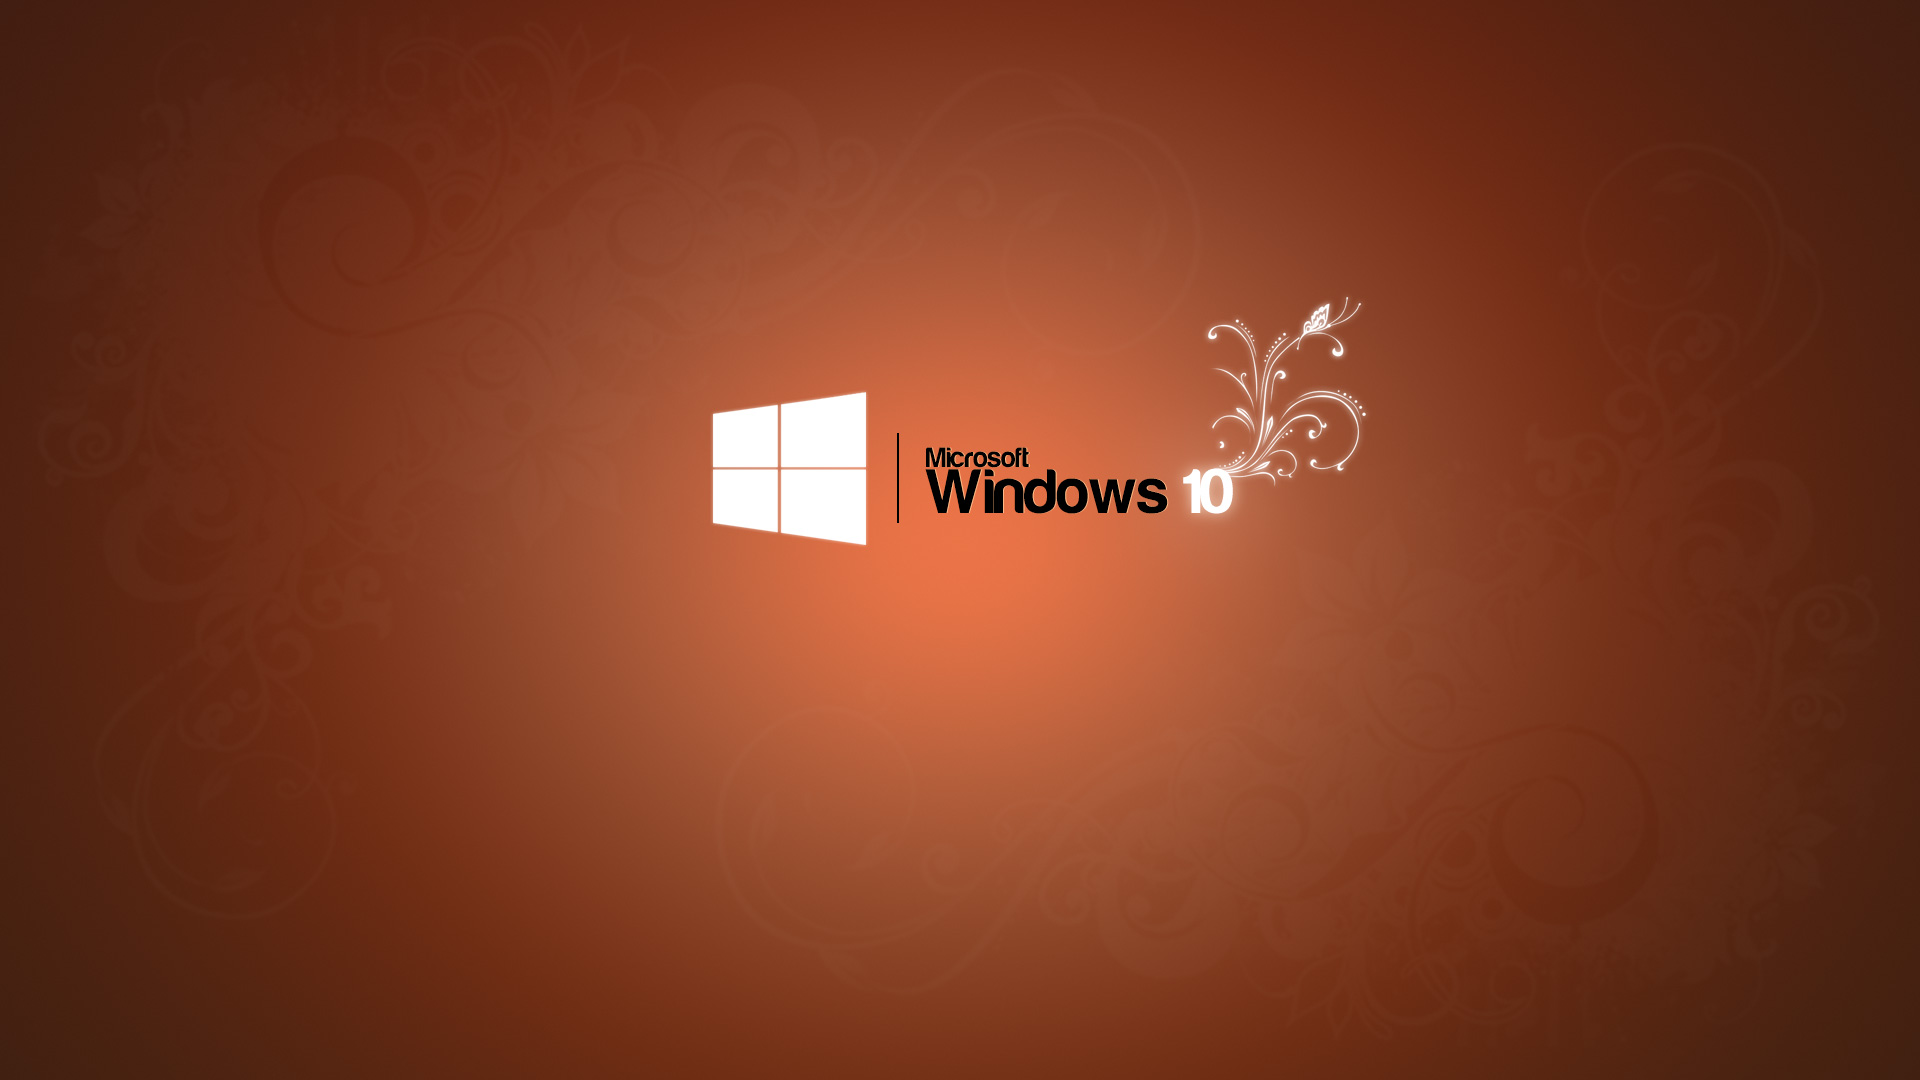 Windows 10 wallpapers pictures images for Best quality windows